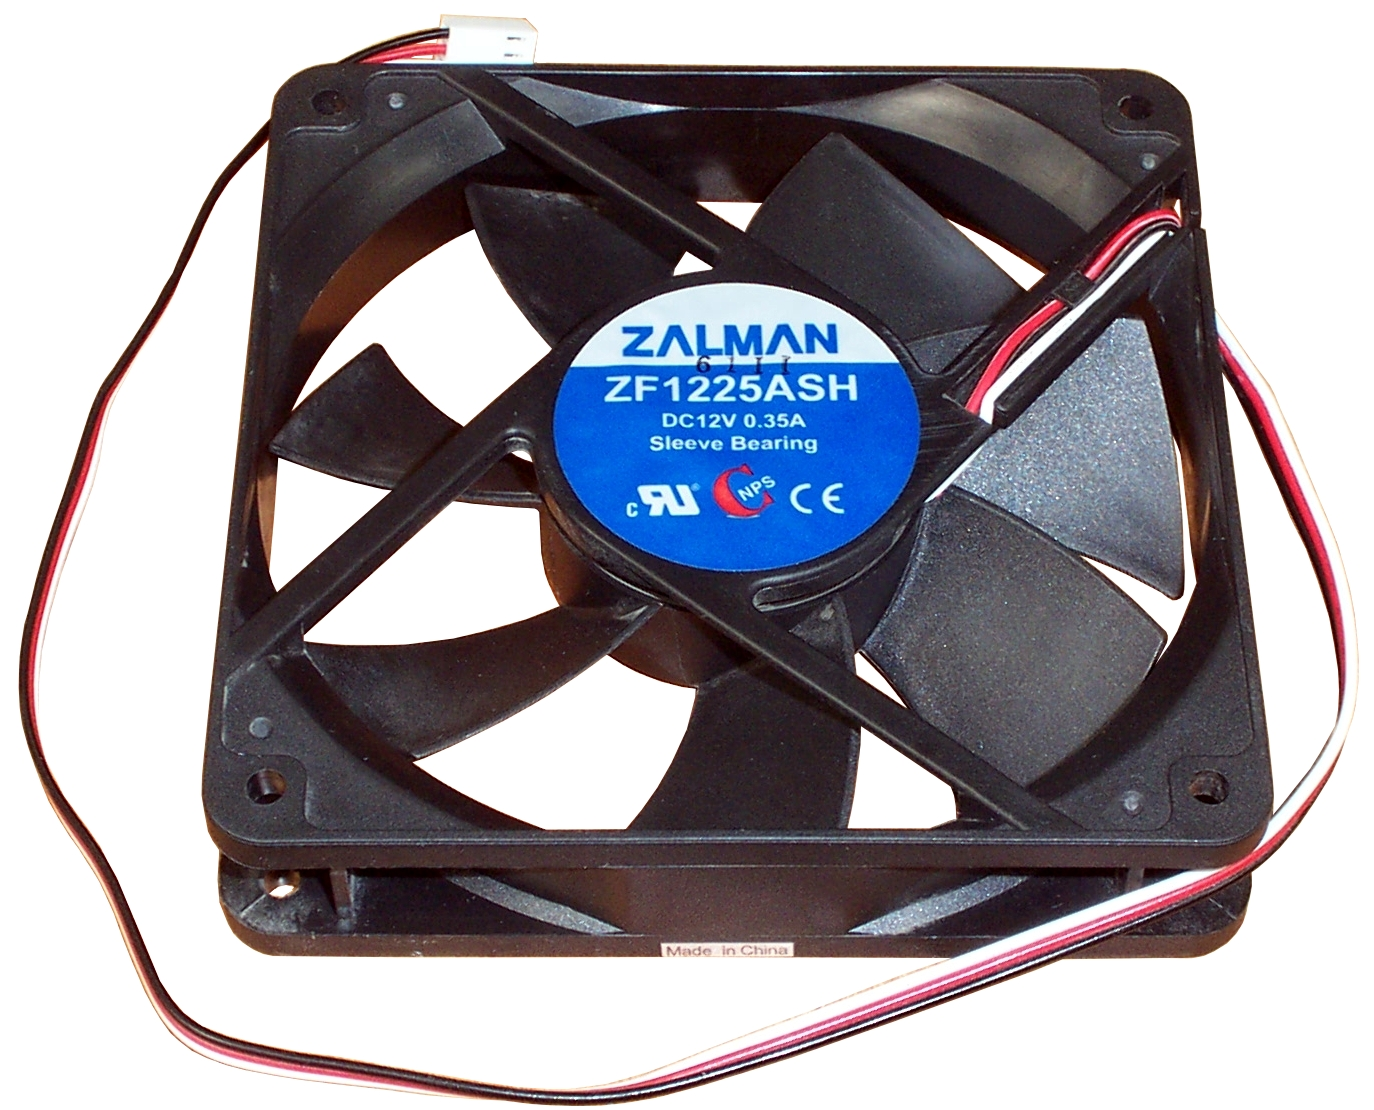 Zalman ZF1225ASH 120mm DC12V 0.35A Case Fan - 3-pin Enlarged Preview